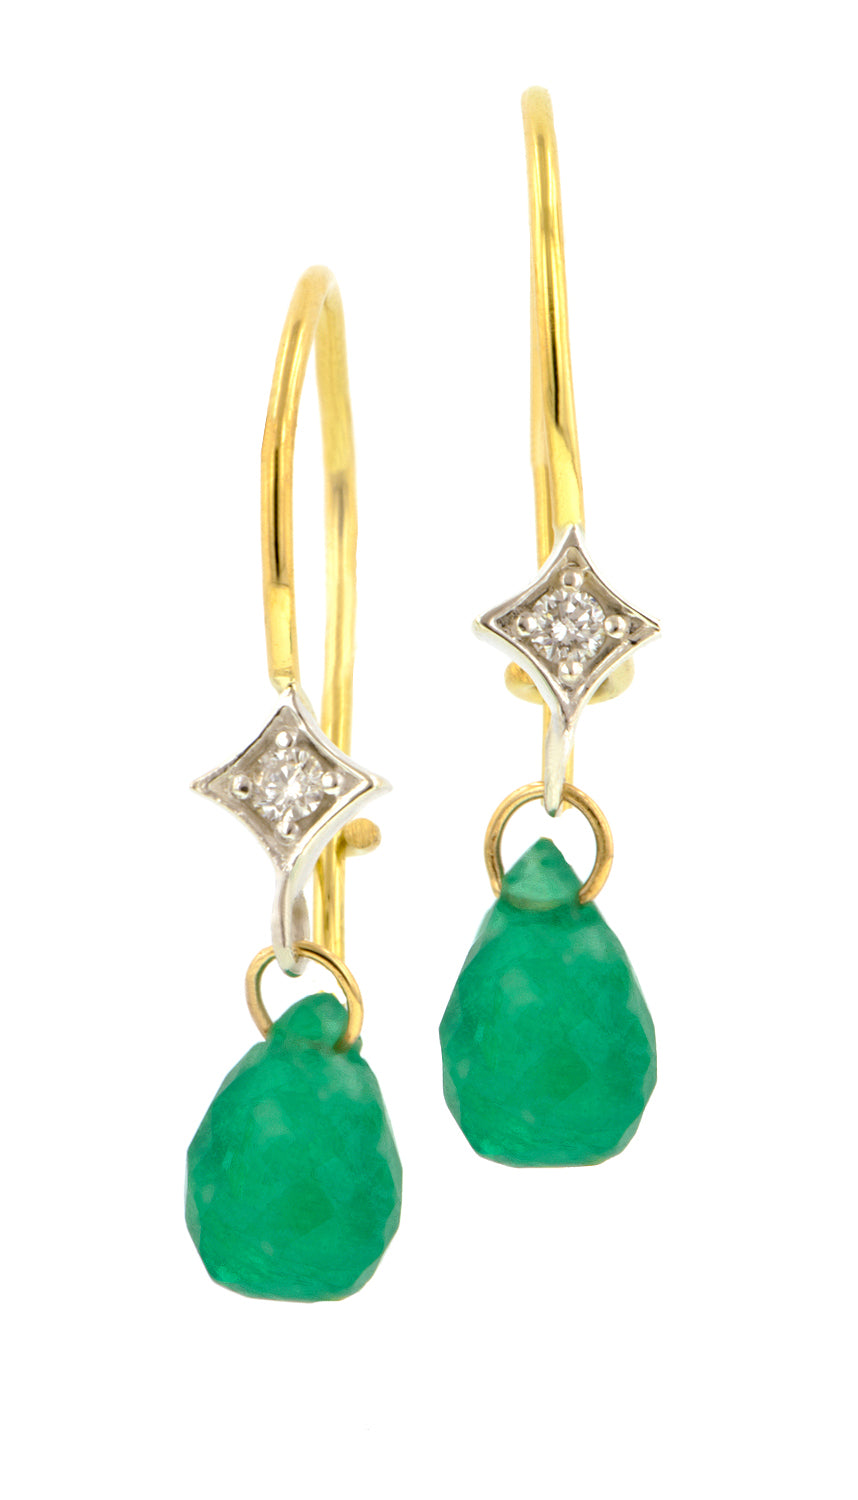 Diamond & Briolette Earrings- Heirloom by Doyle & Doyle